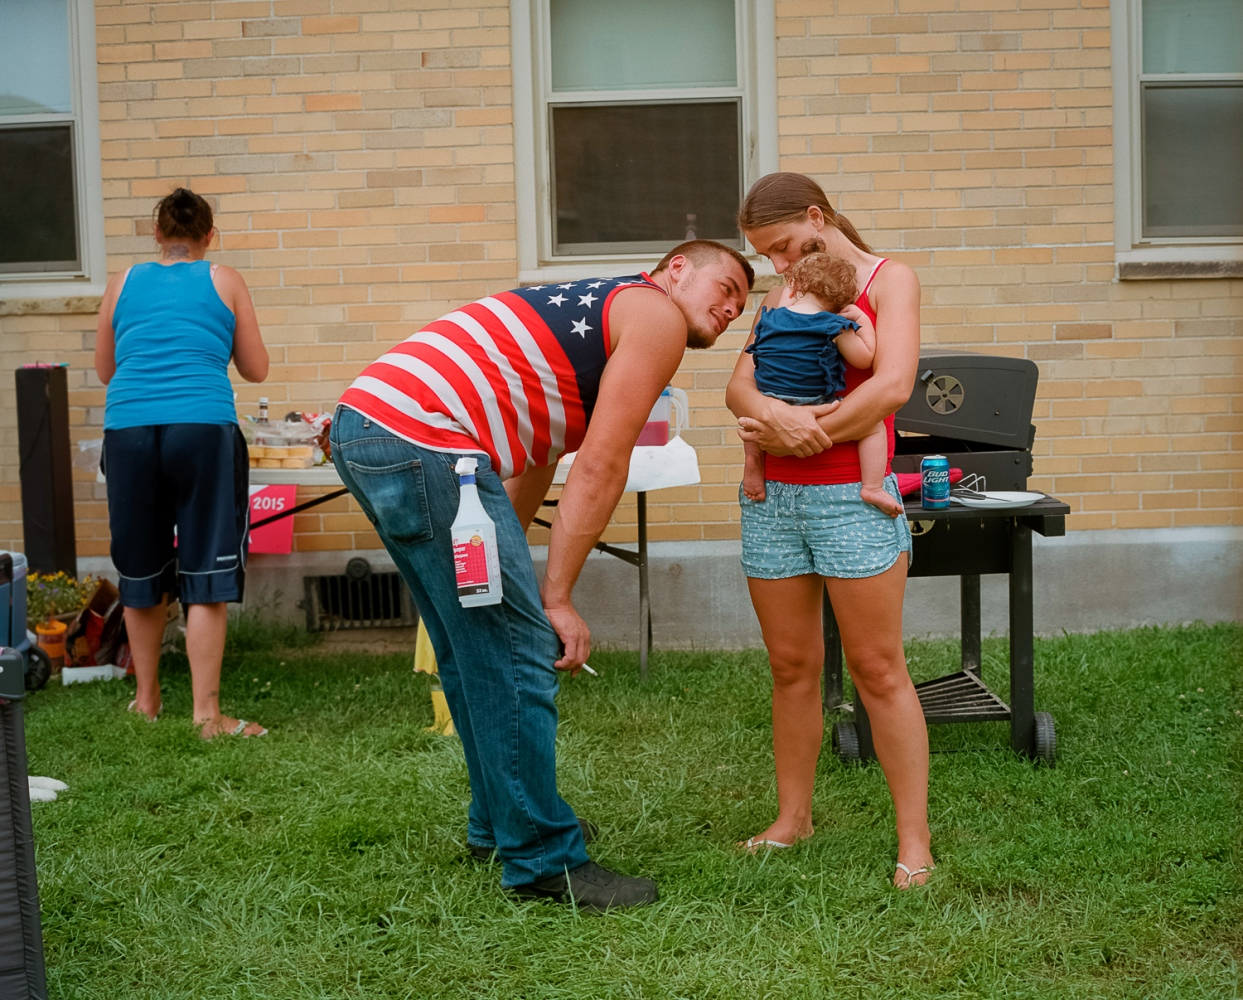 Levi and Nikki with their baby, Mazie, on the Fourth of July at the Wayne Hills apartment complex in Portsmouth. A subsidized housing project, Wayne Hills is known in the community for the prevalence of drug use among its residents. Both Levi and Nikki have steady jobs, and neither struggles with addiction.